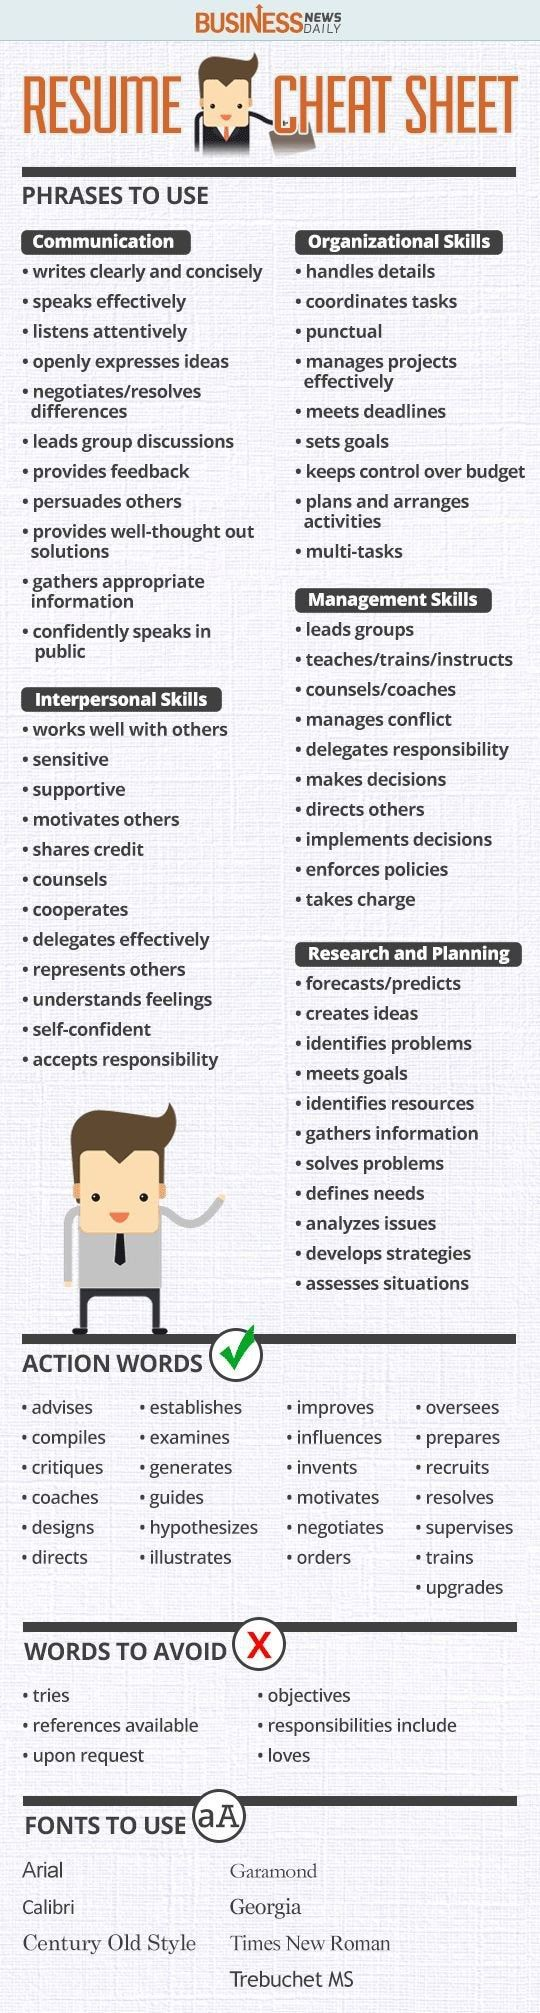 Keywords by trait to help buff up your resume coolguides